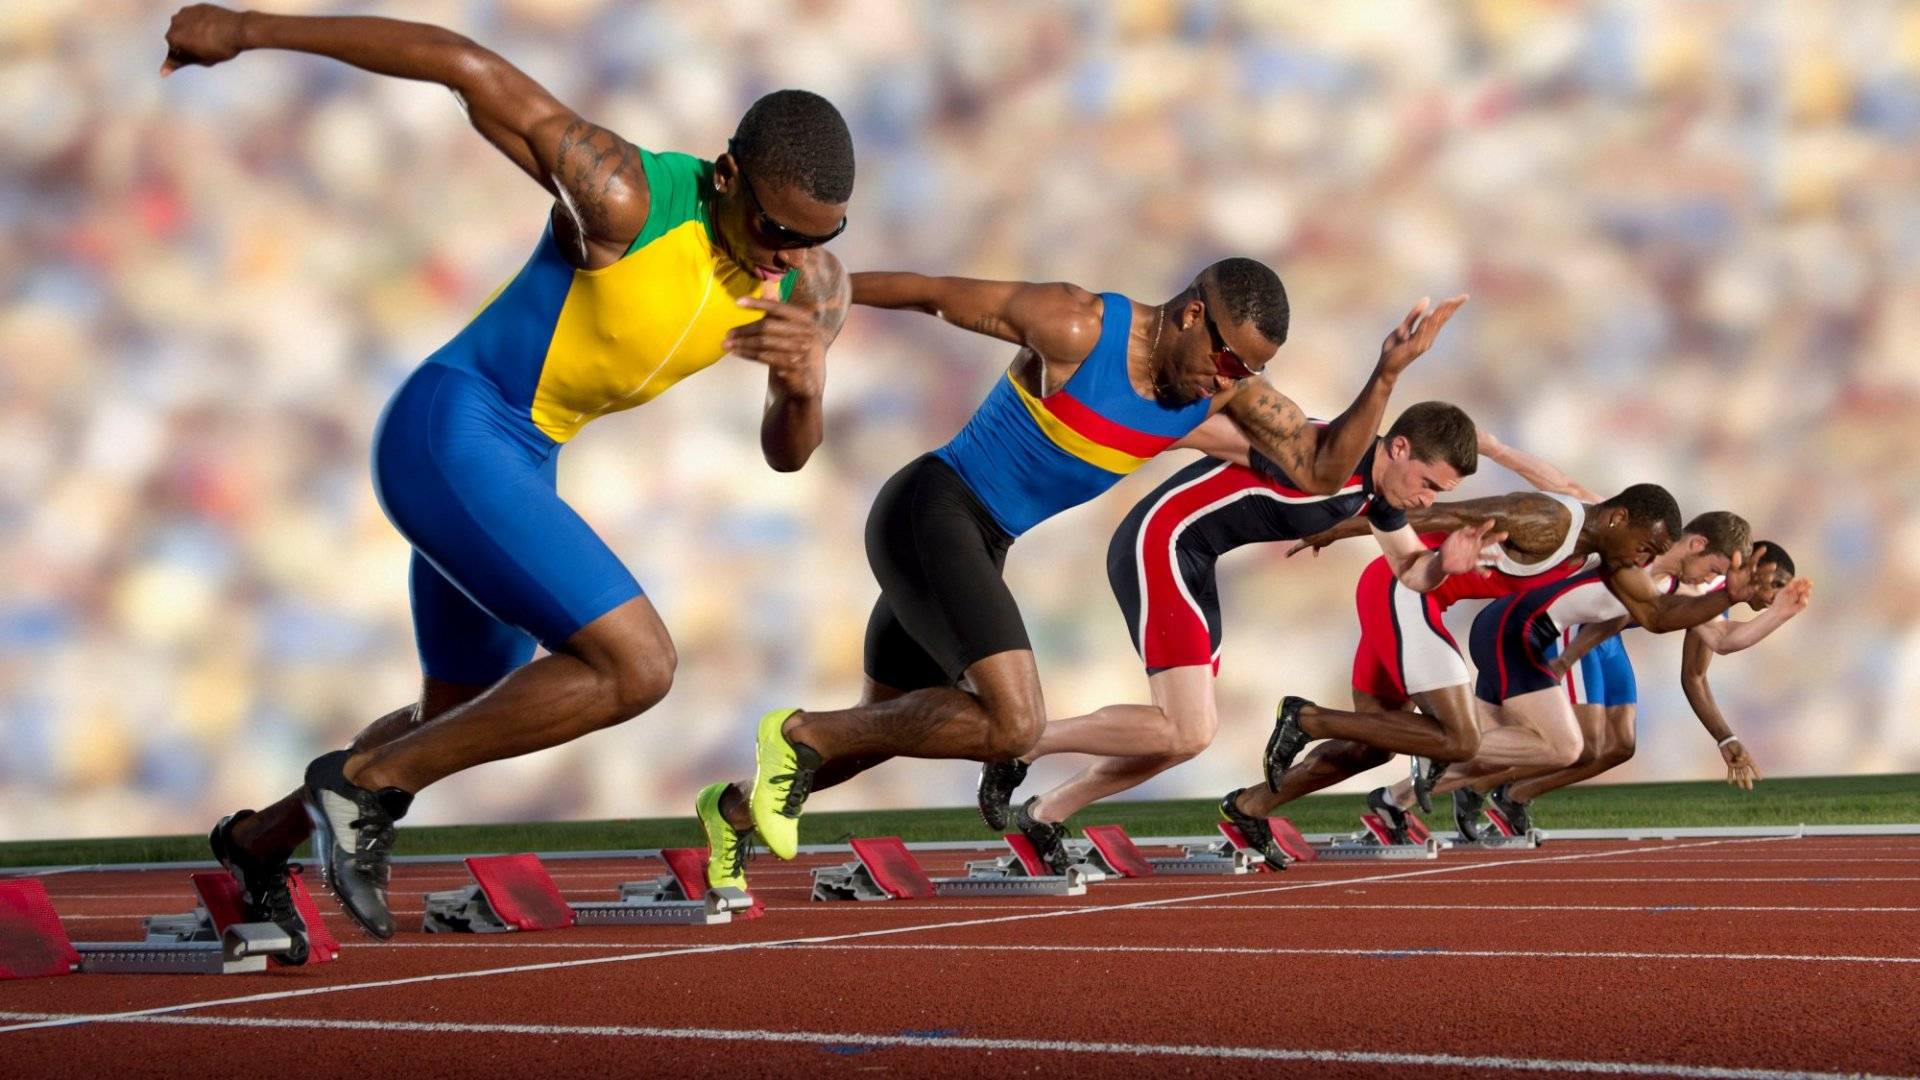 Is Your Sales Team Rowers or Runners?